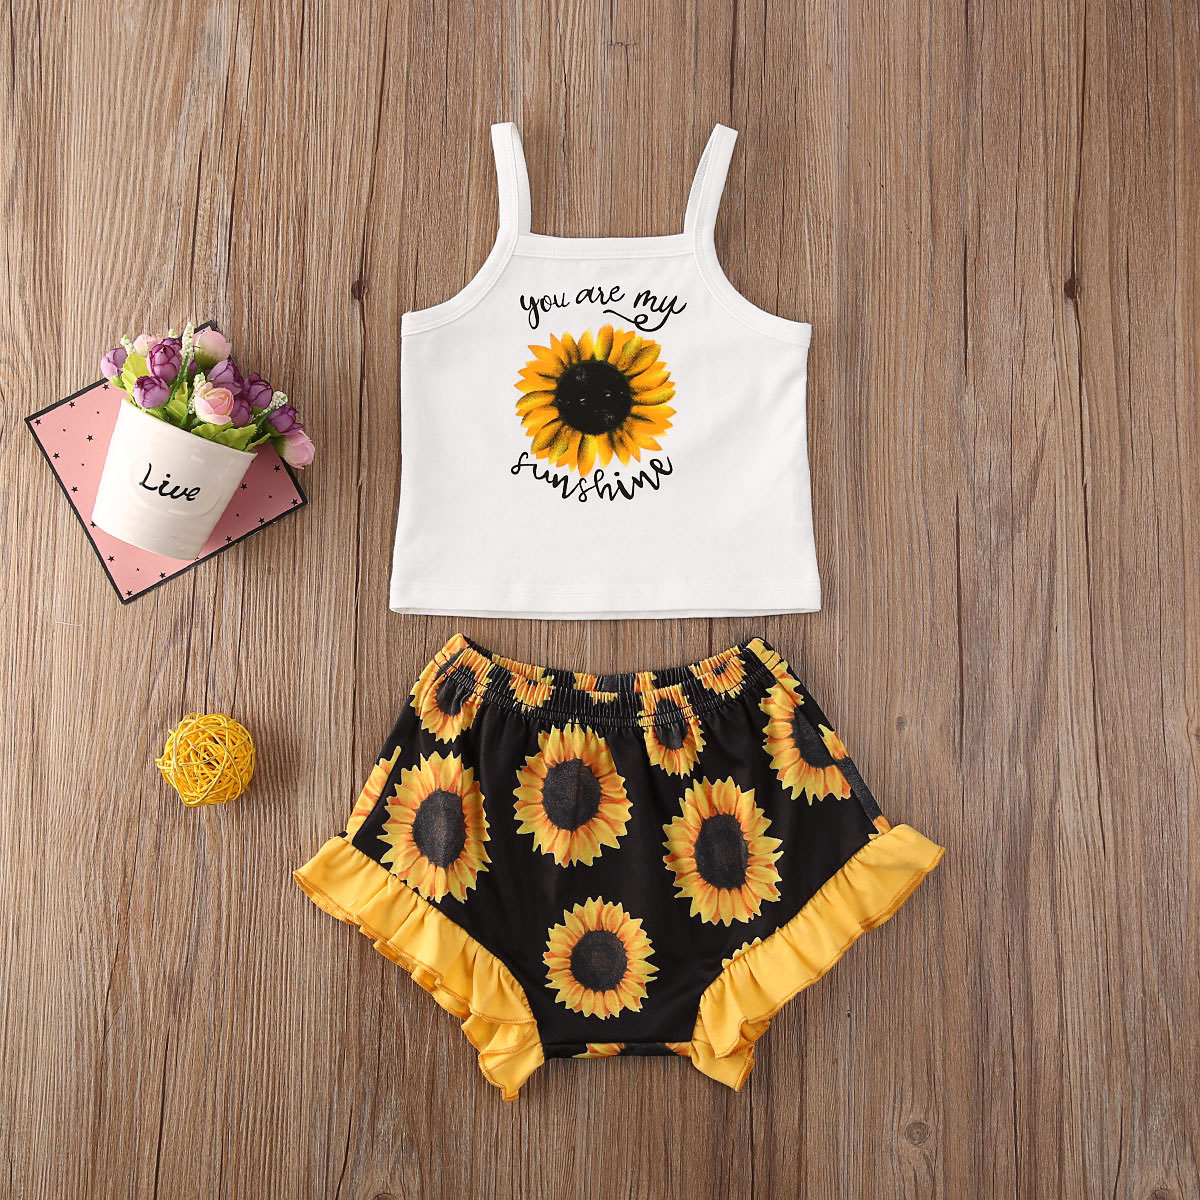 Emmababy Newborn Baby Girl Clothes Sunflower Print Sleeveless Vest Tops Ruffle Short Pants 2Pcs Outfits Cotton Clothes Sunsuit